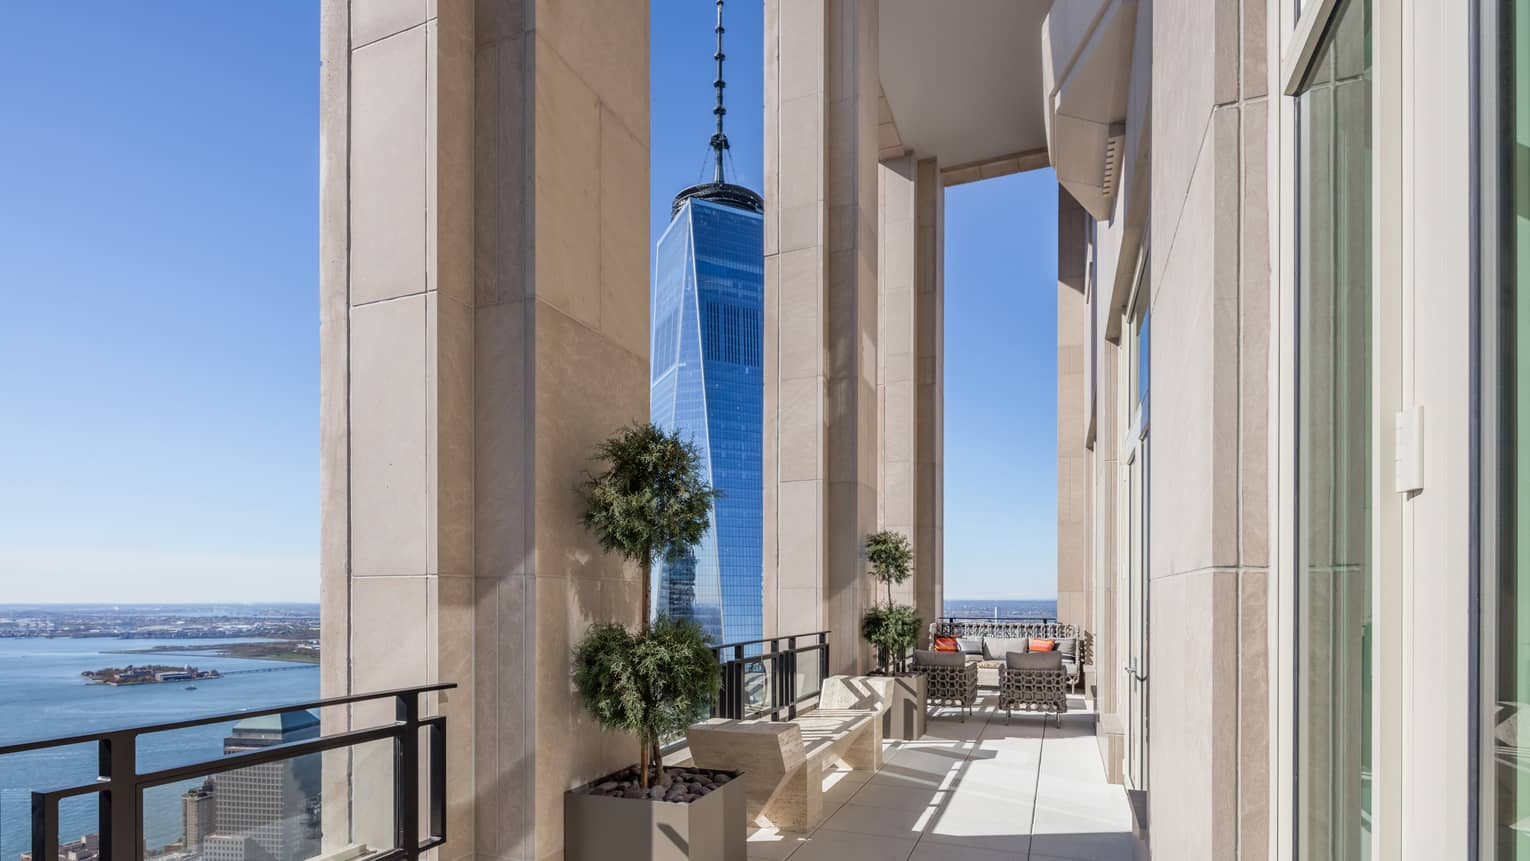 Private penthouse terrace with bench, seating area under soaring stone pillars, Hudson River views